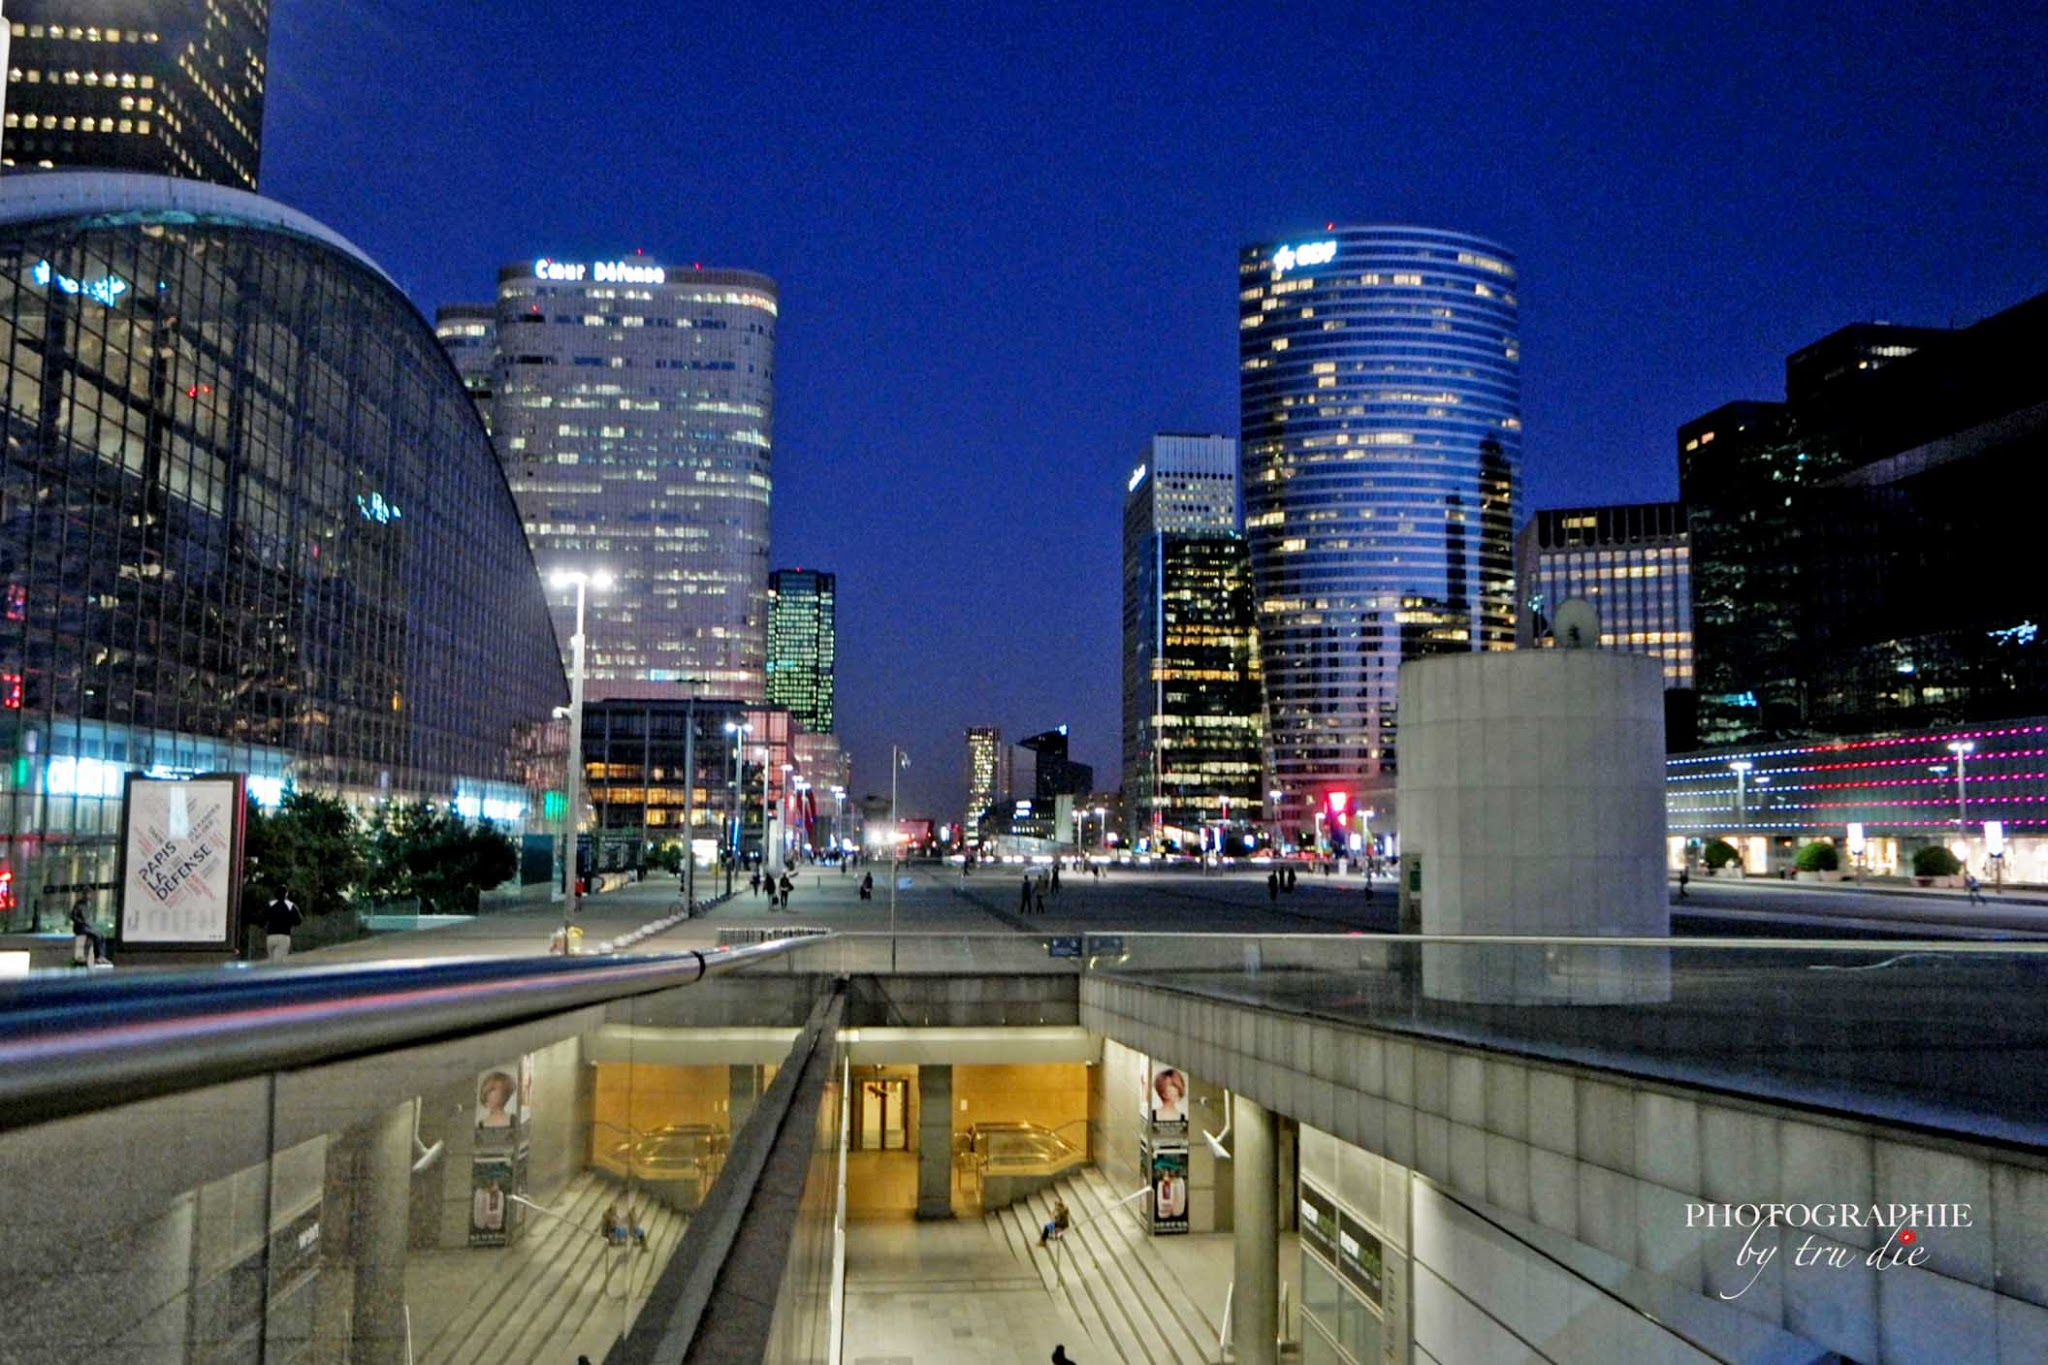 Bild: Stadtteil La Defense in Paris